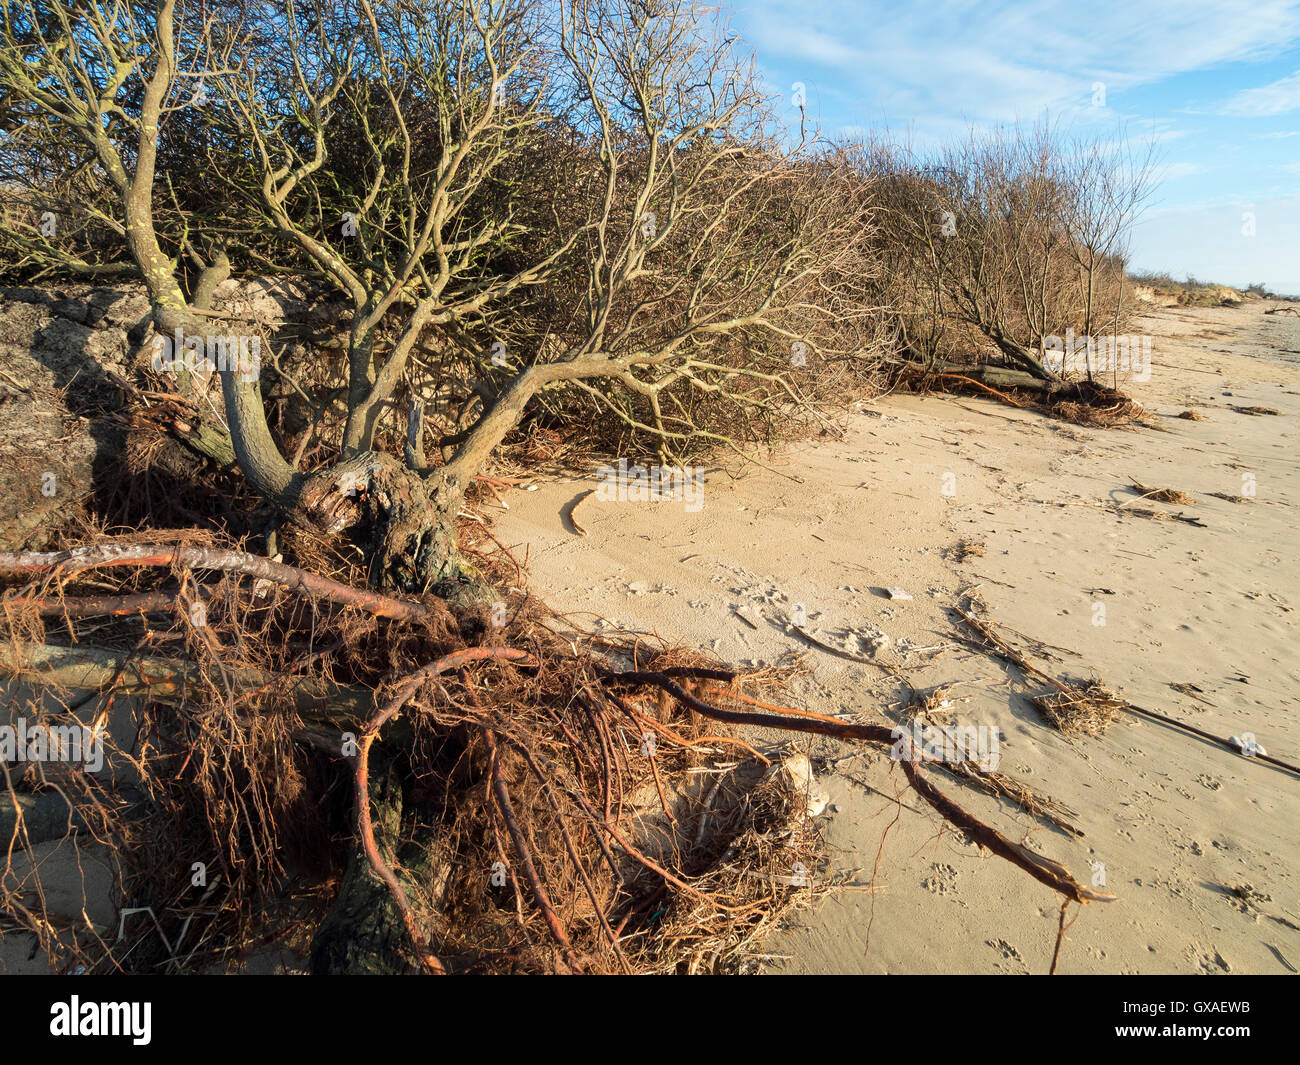 Destruction of coastal dune under the impact of storms. - Stock Image